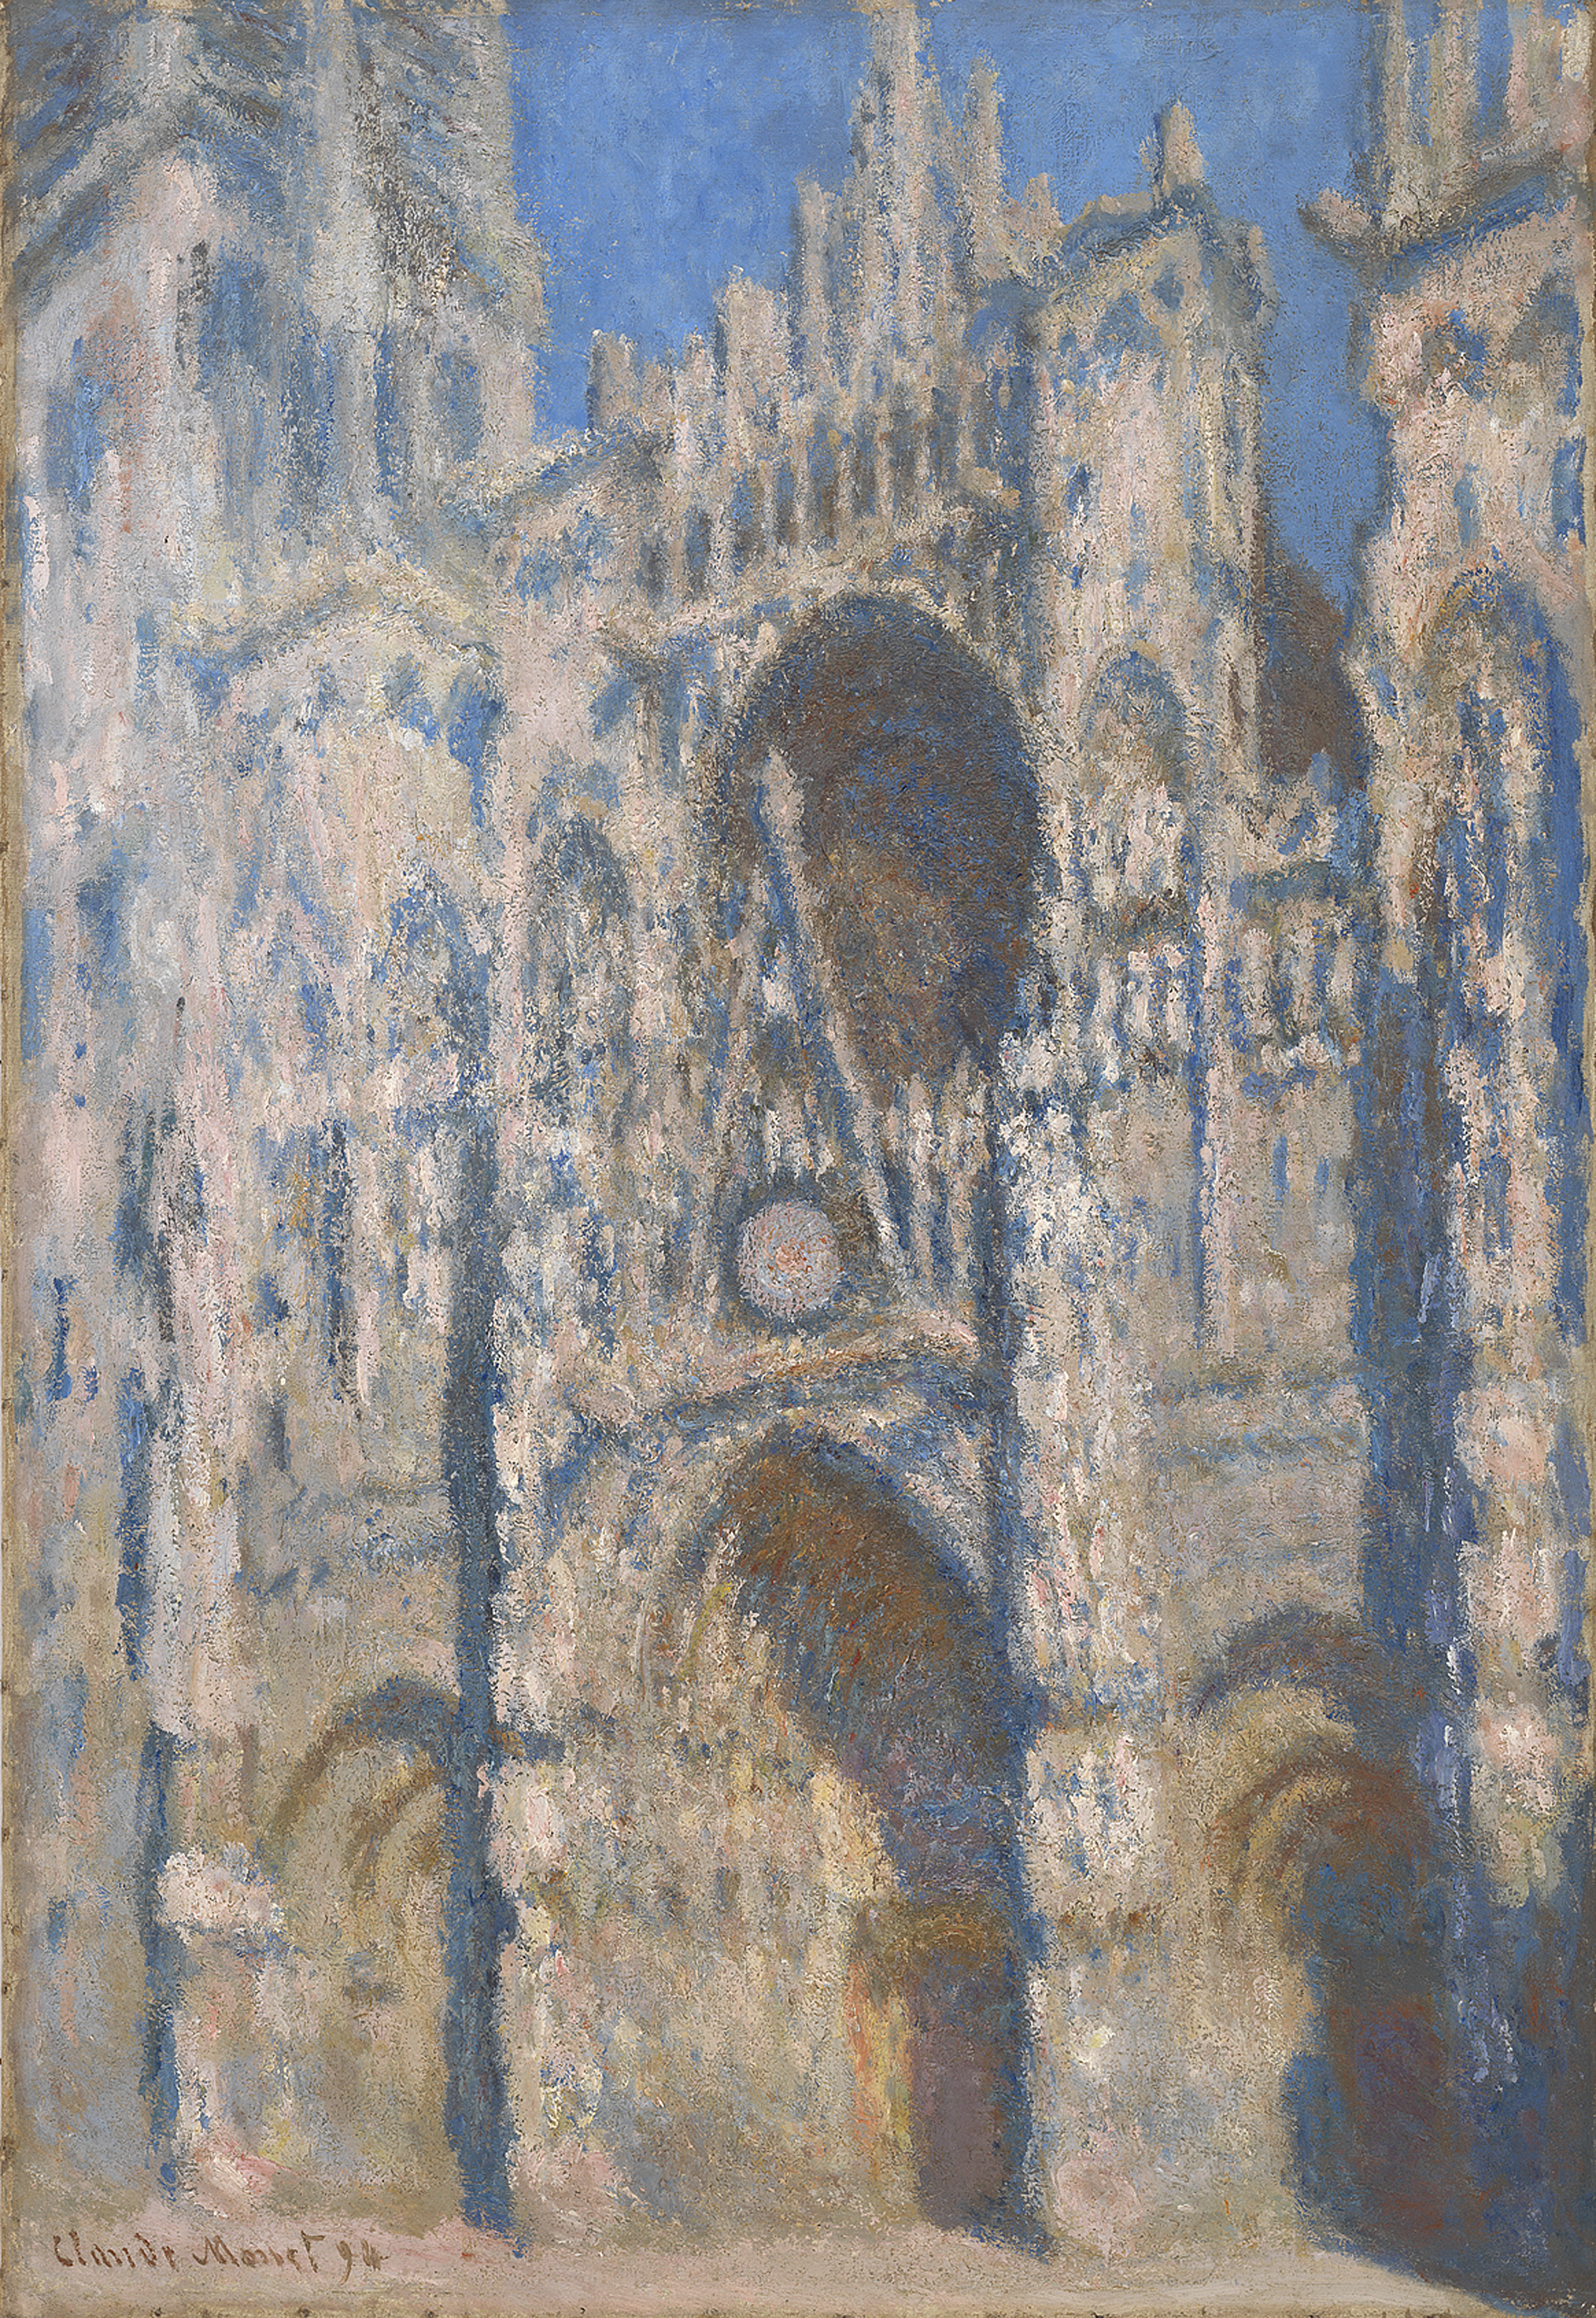 Monet and Architecture review